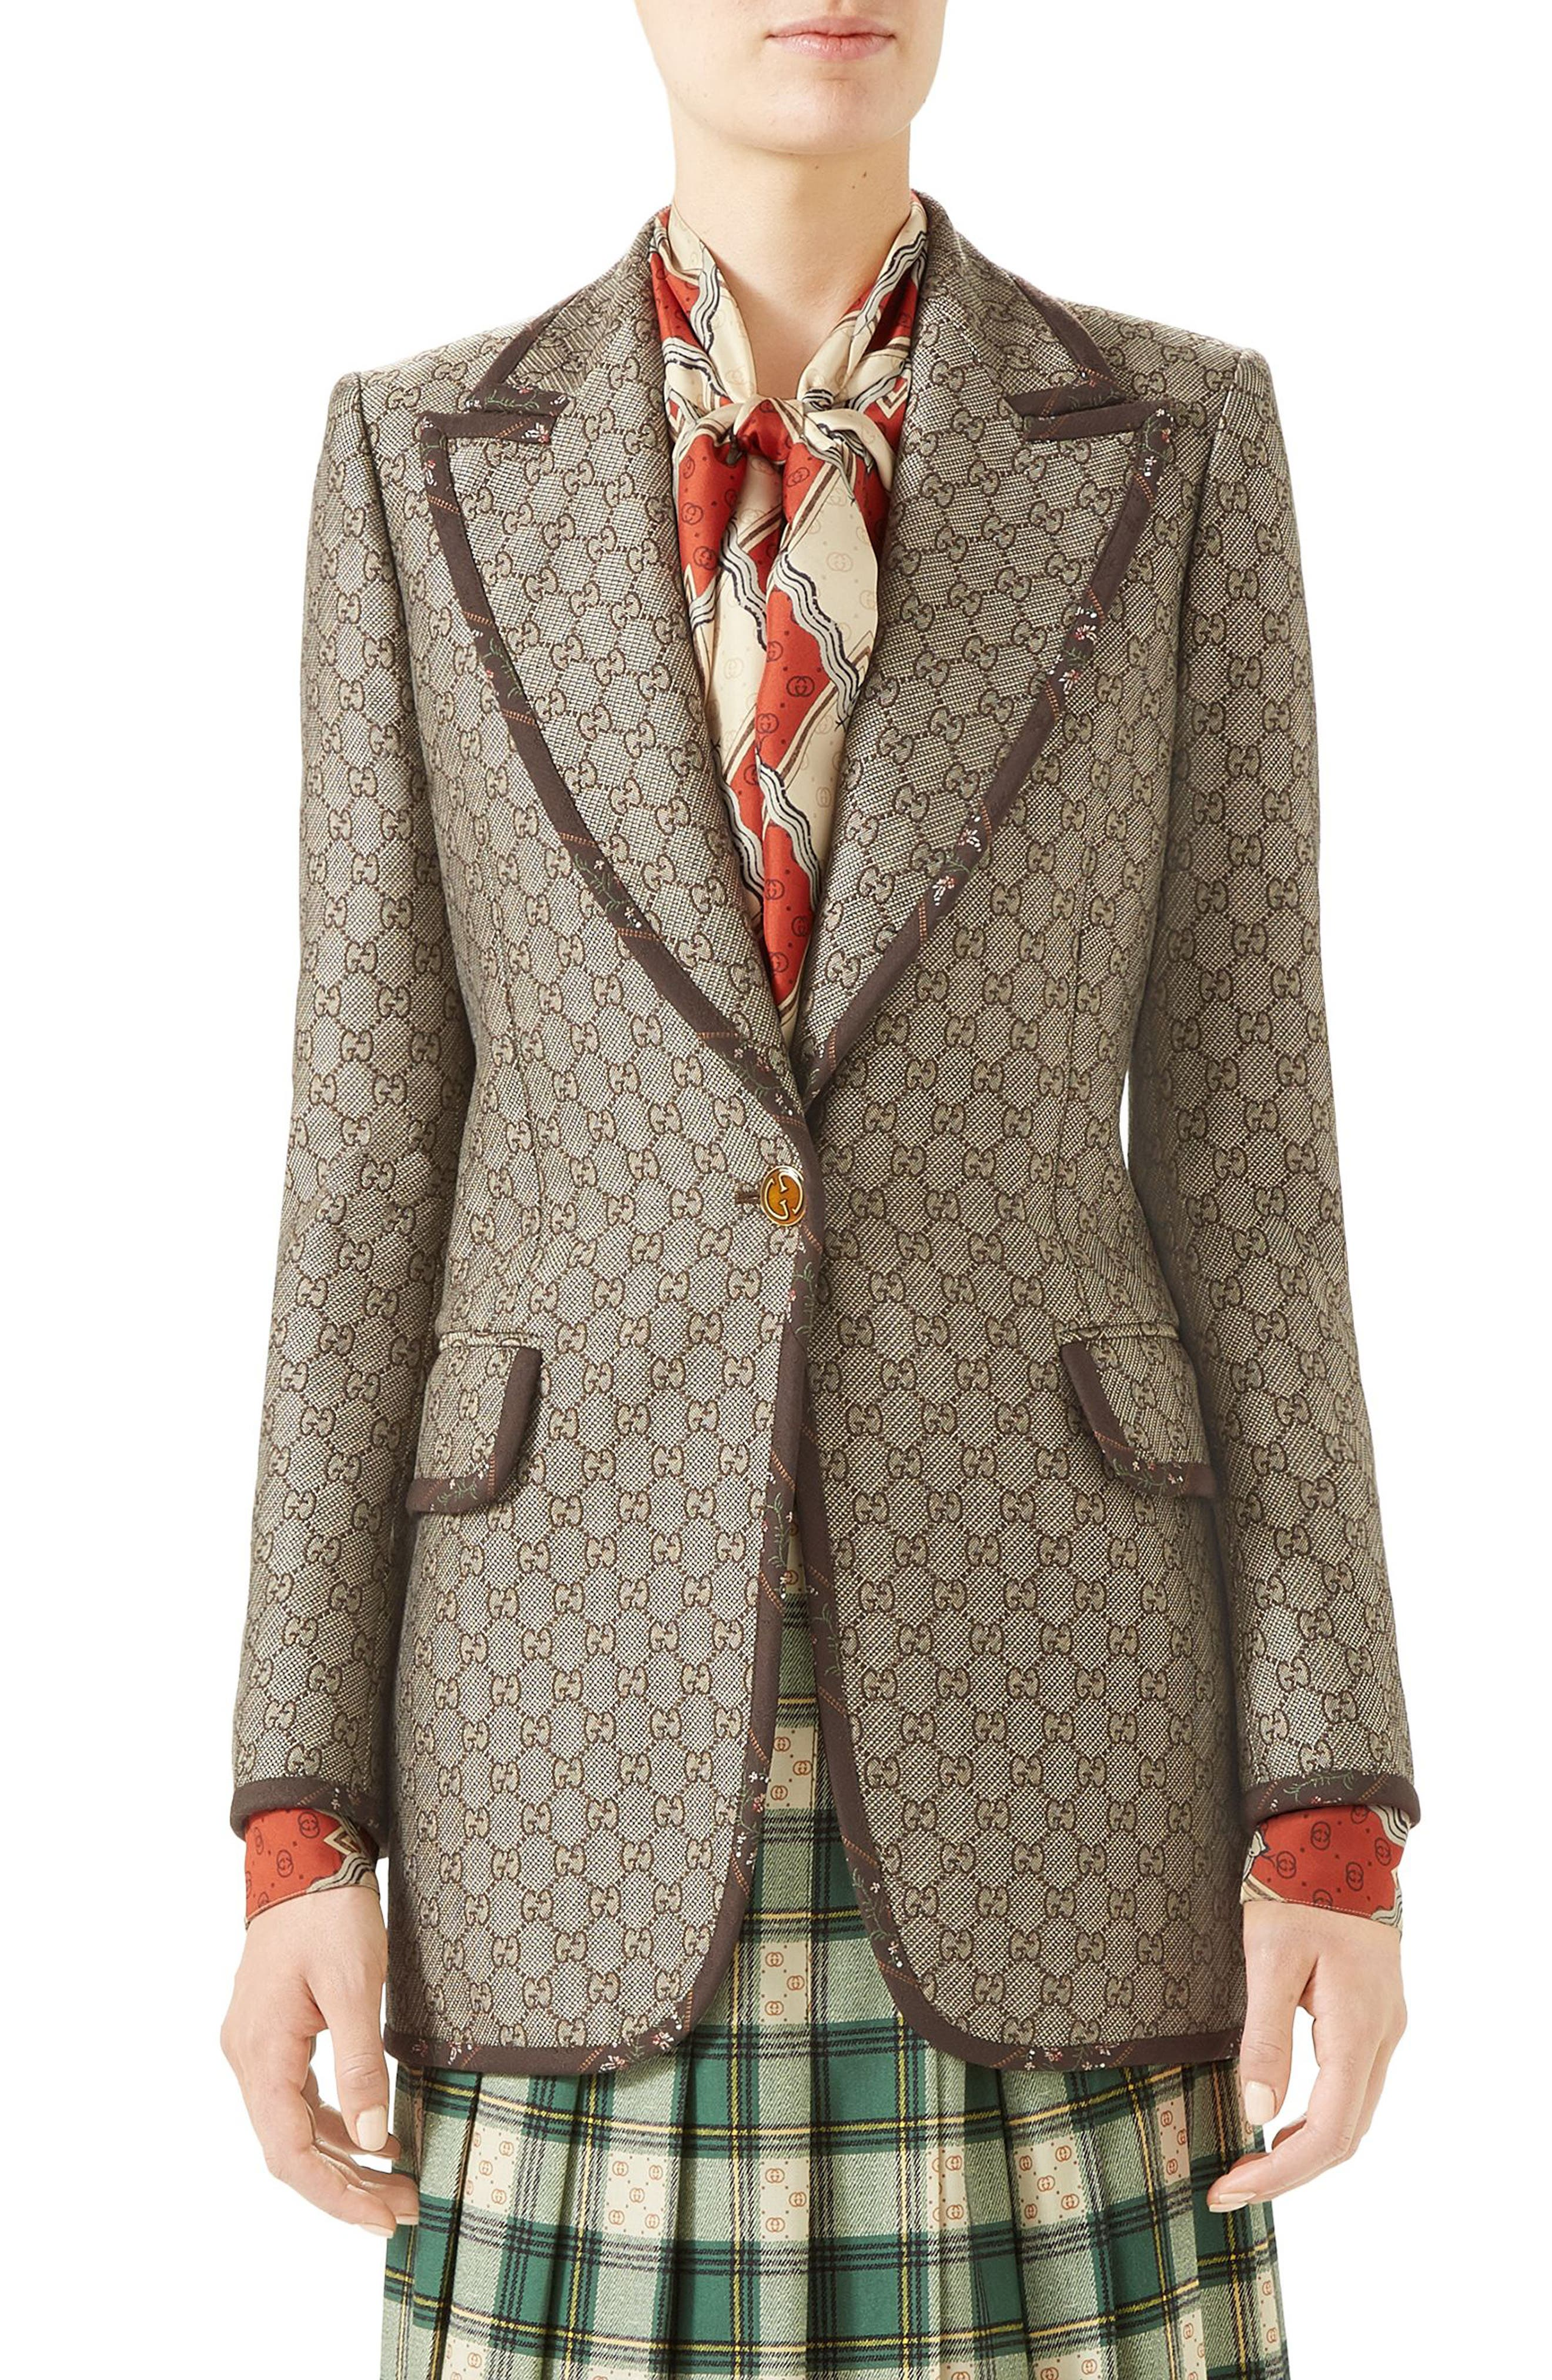 Gg Jacquard Wool-Canvas Jacket in 9287 Natural White/ Brown/